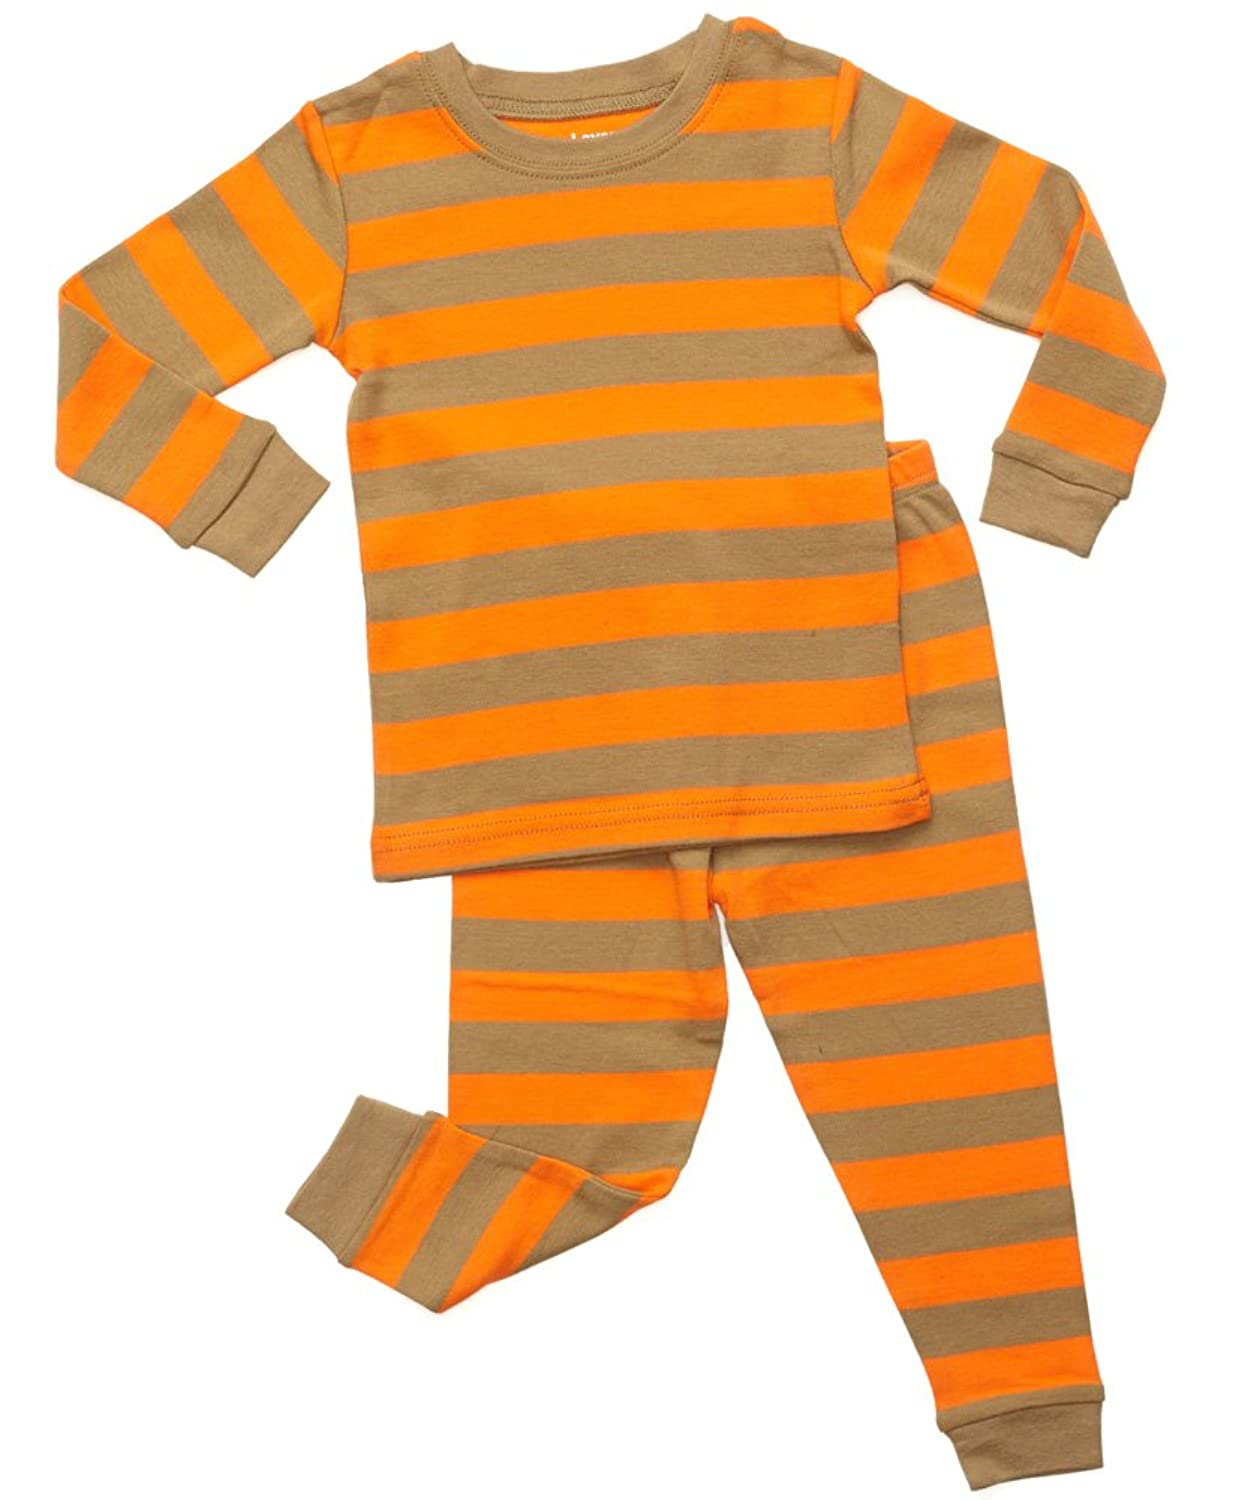 Boys Pajamas at Macy's come in all styles & colors. Buy boys footed, fleece, short pajamas & more at Macy's! You have size preferences associated with your profile. Toddler, Little & Big Boys Pajama Set Limited-Time Special $